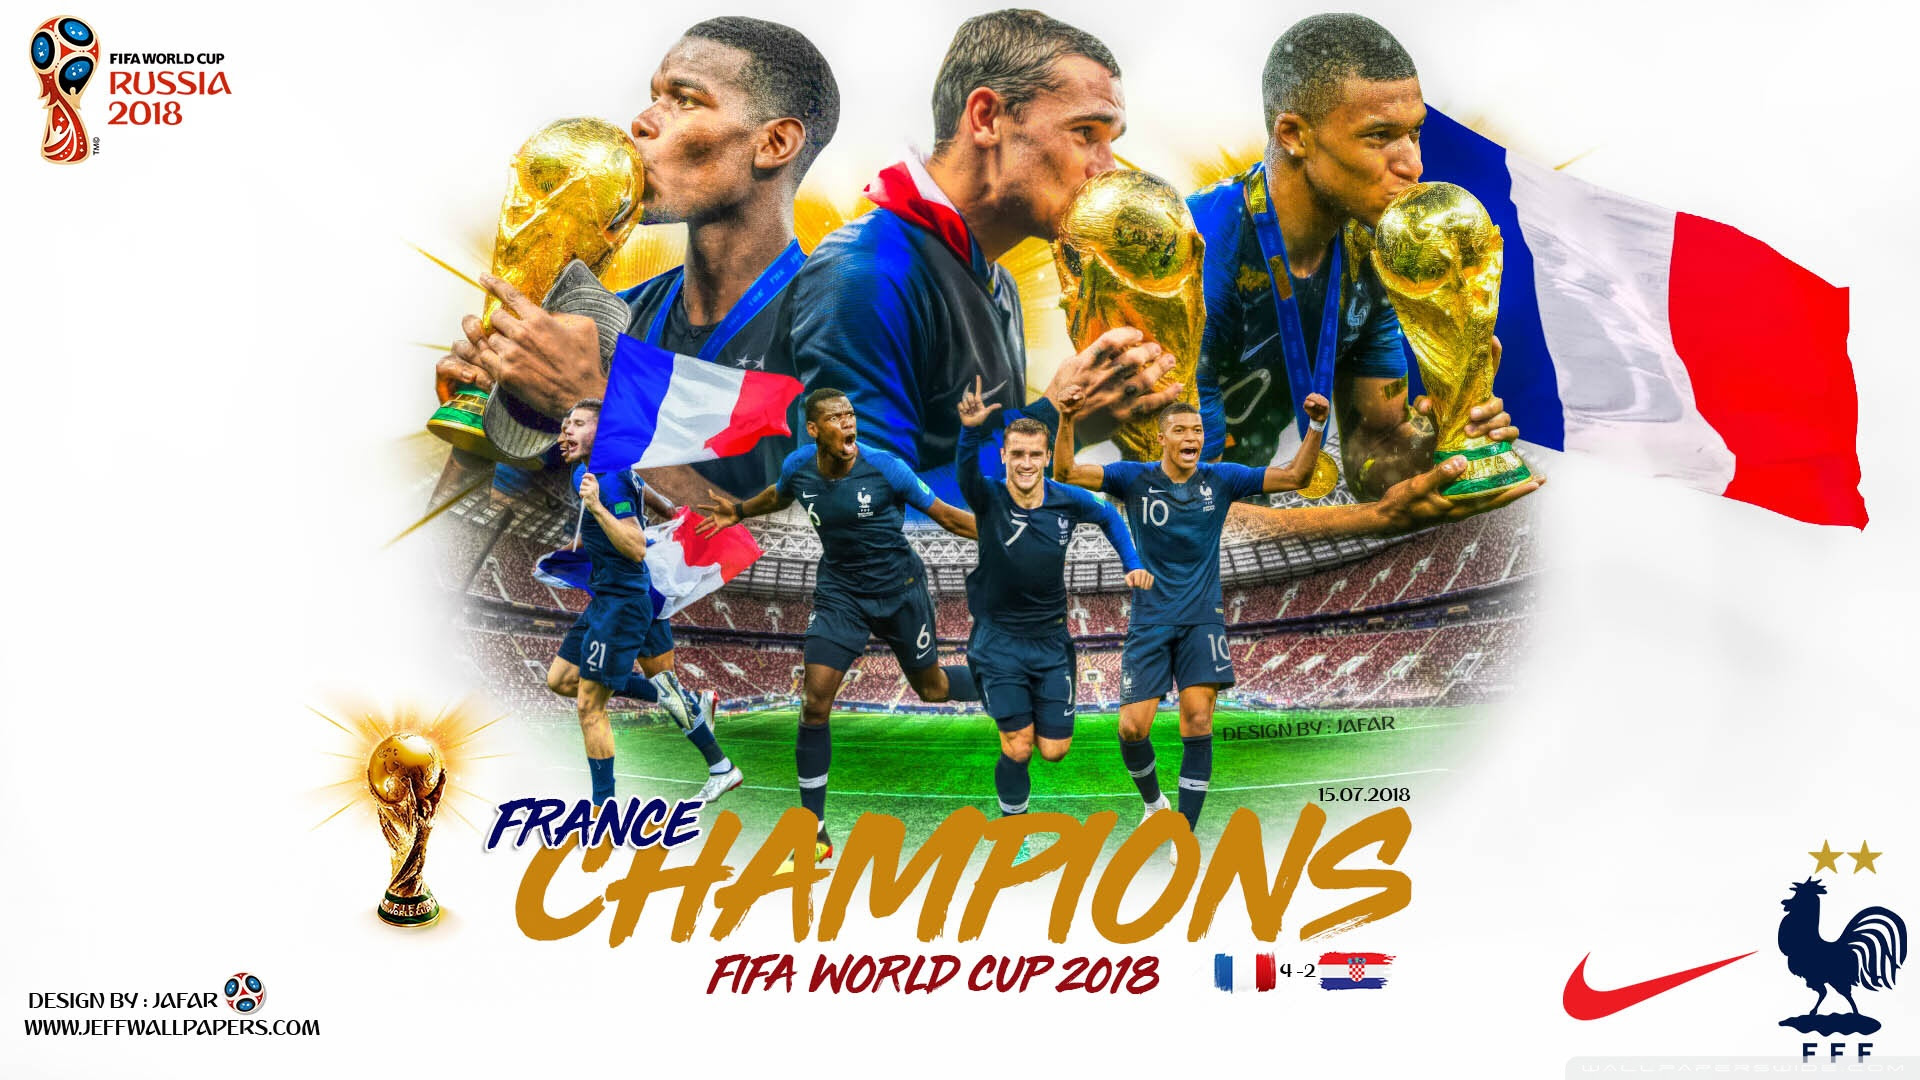 France Champions Fifa World Cup 2018 Ultra Hd Desktop Background